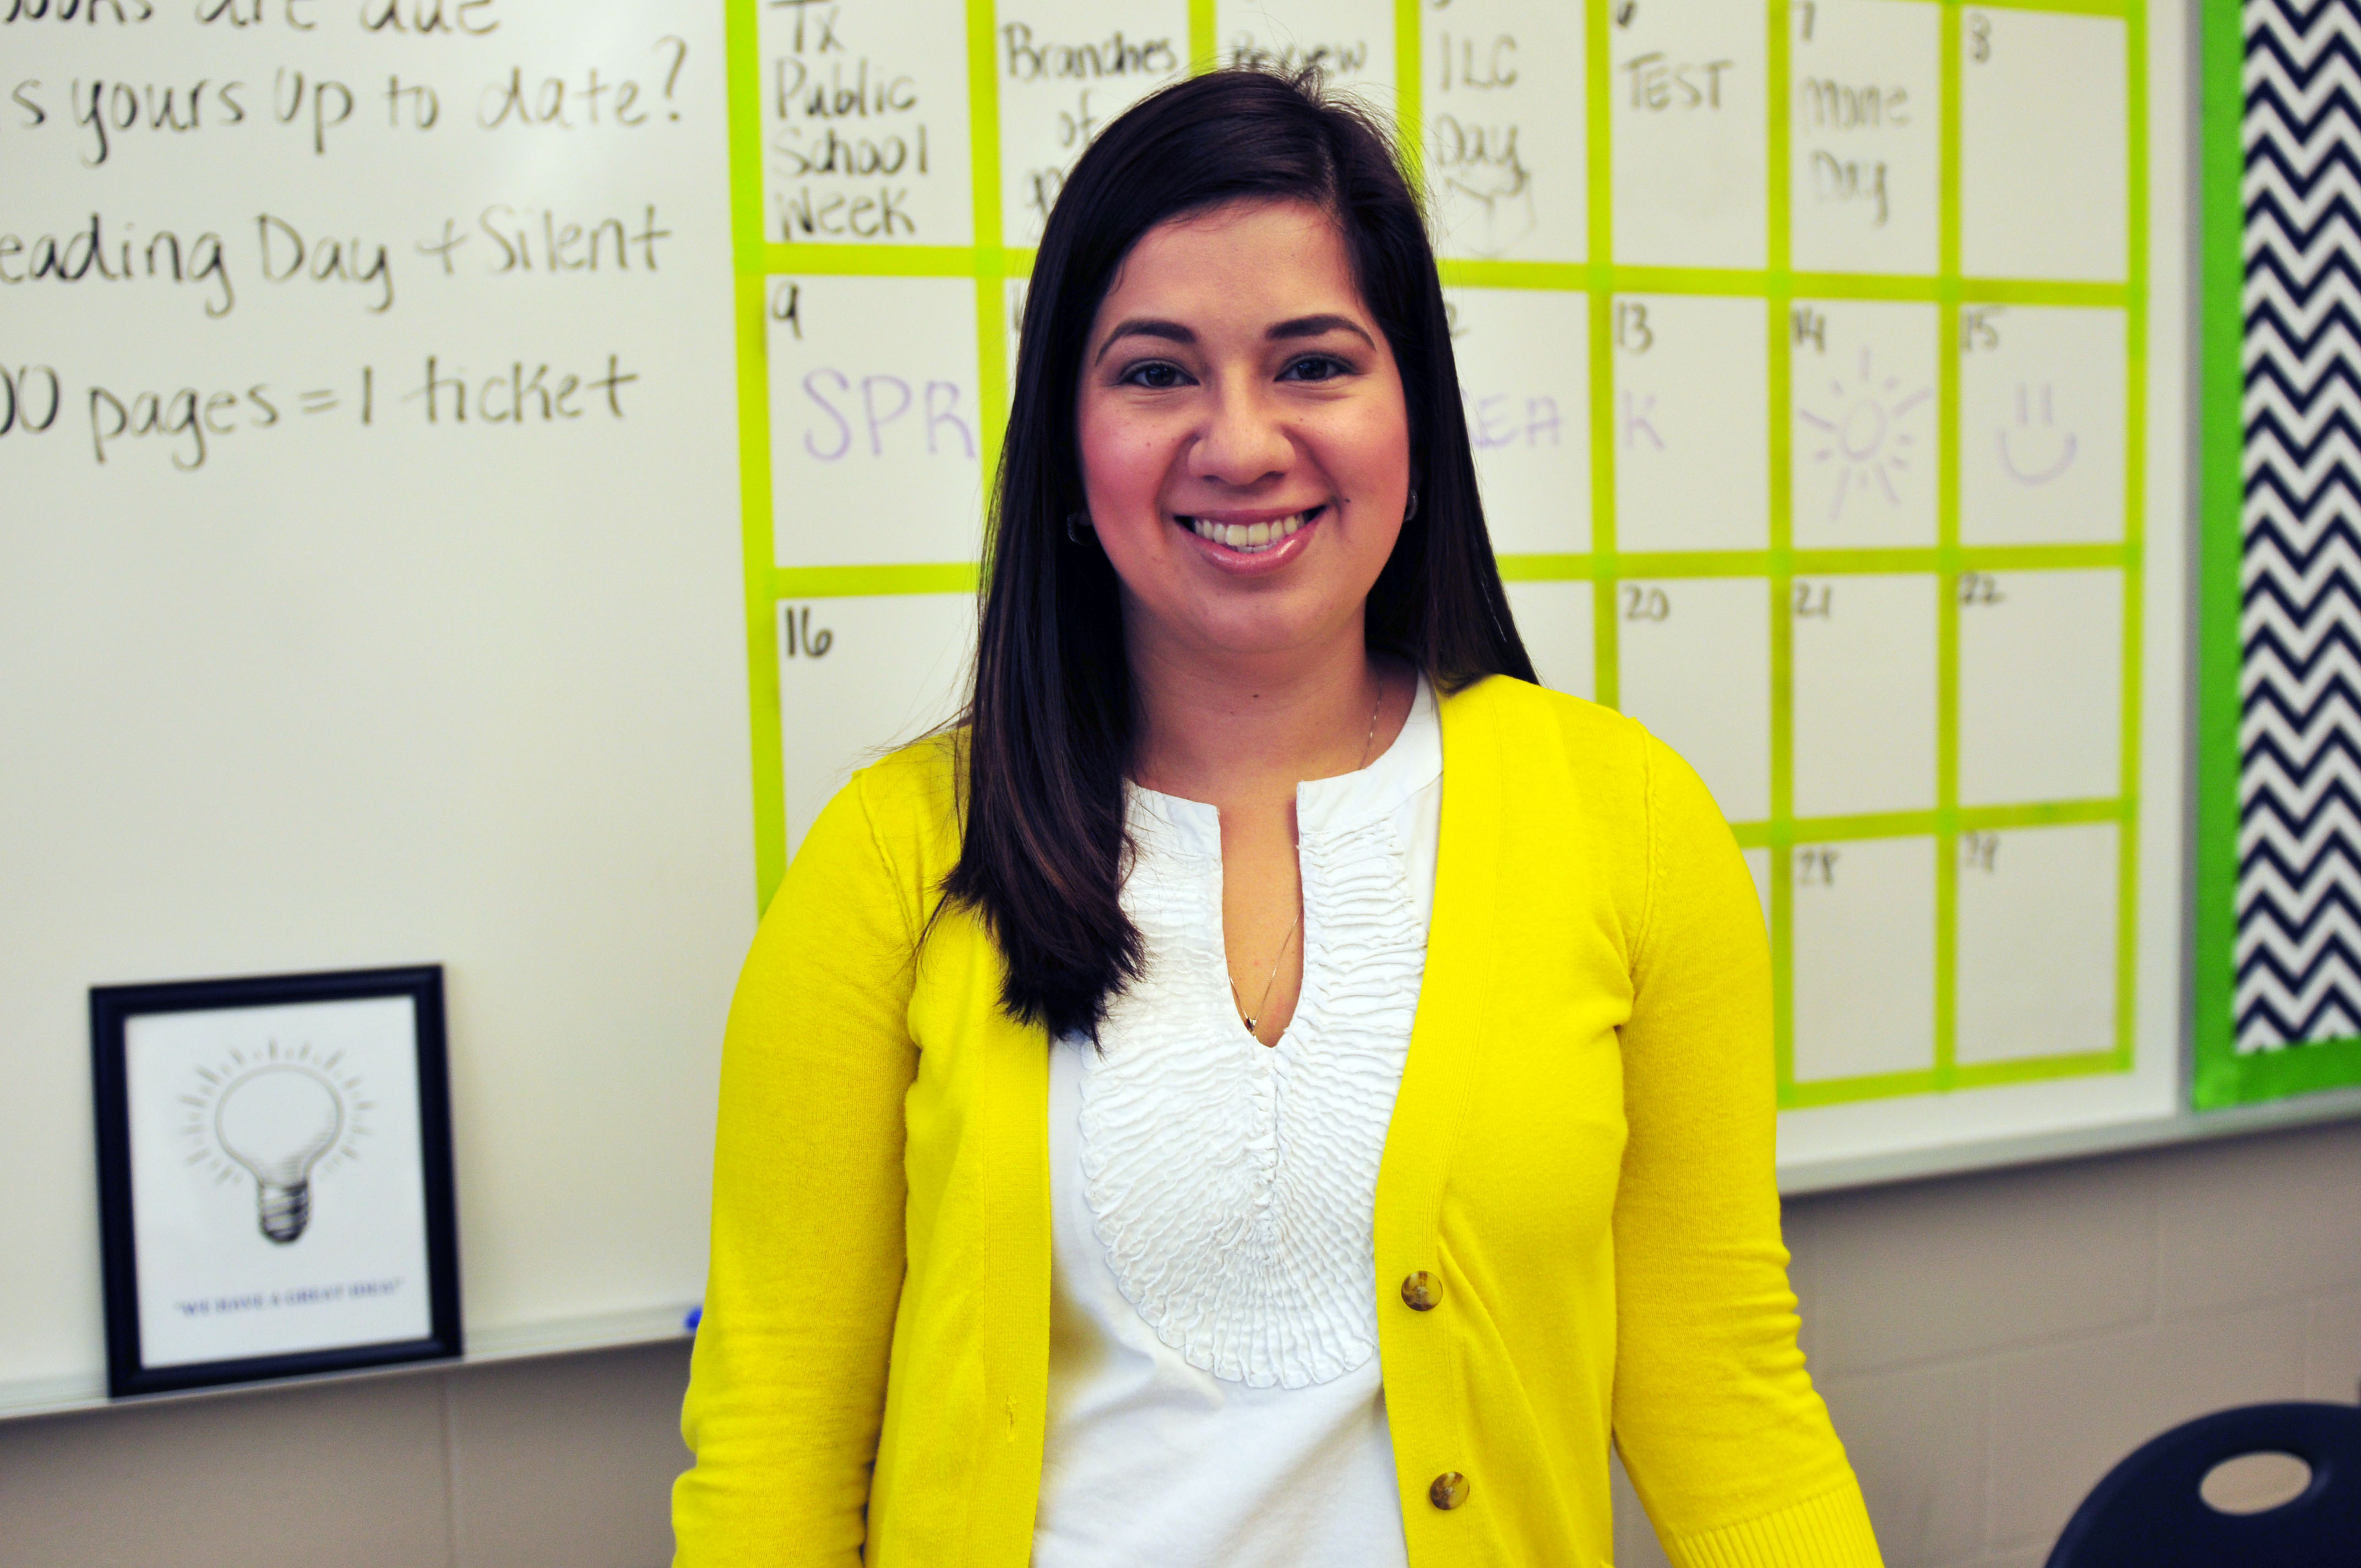 Teacher of the Week: Salinas keeps legacy of passion for teaching